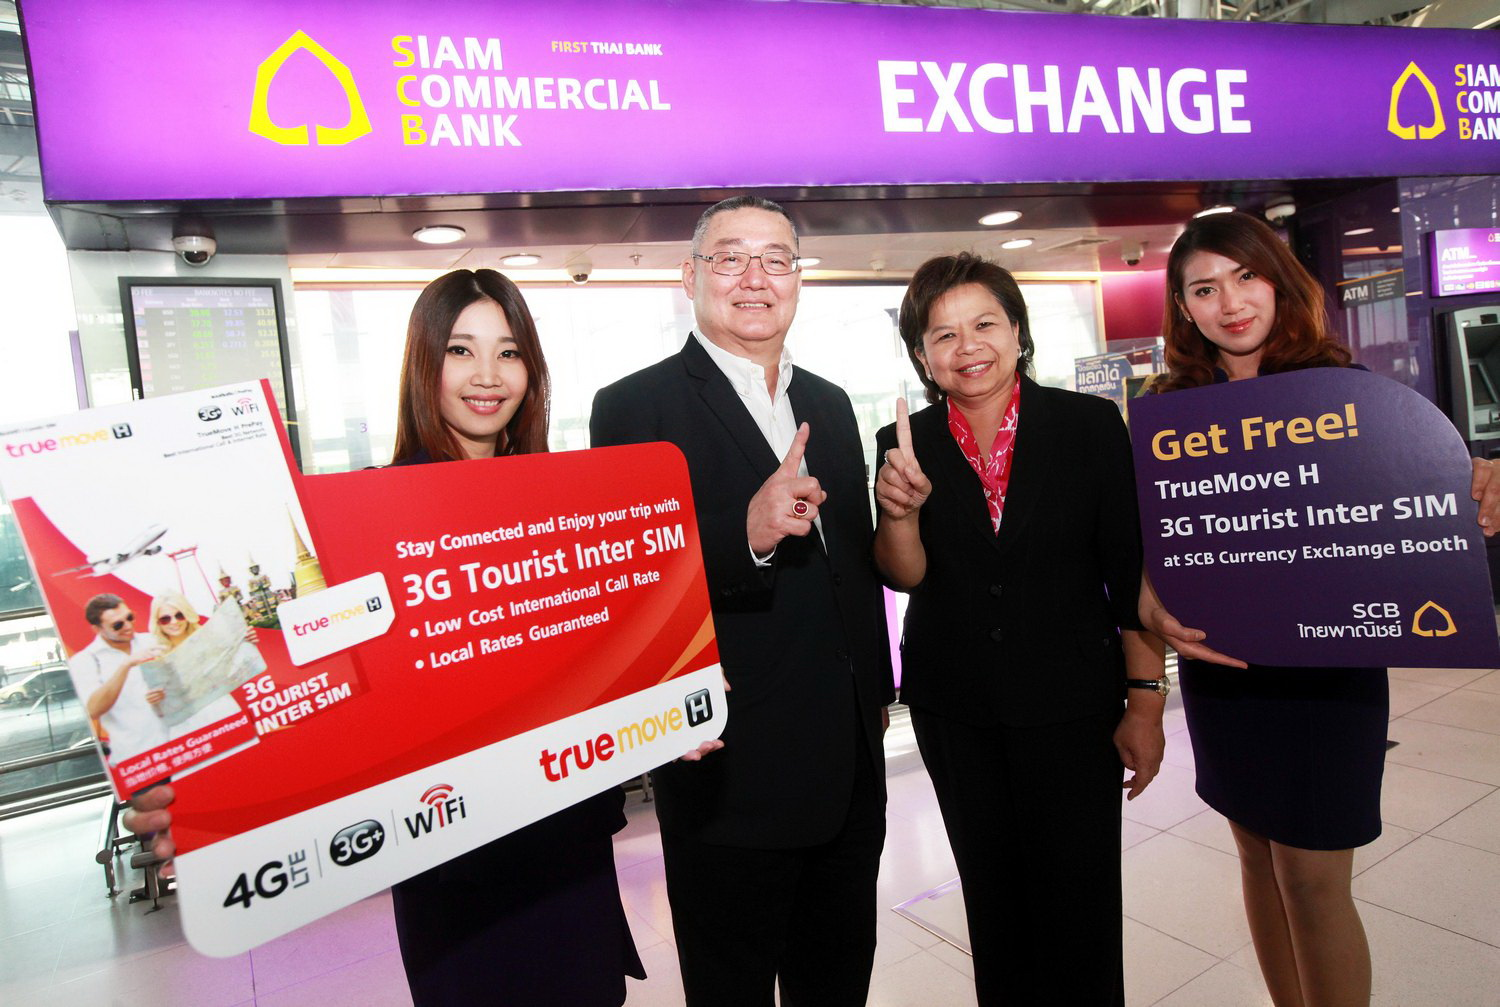 Truemove H In Collaboration With Siam Commercial Bank Is Giving Free